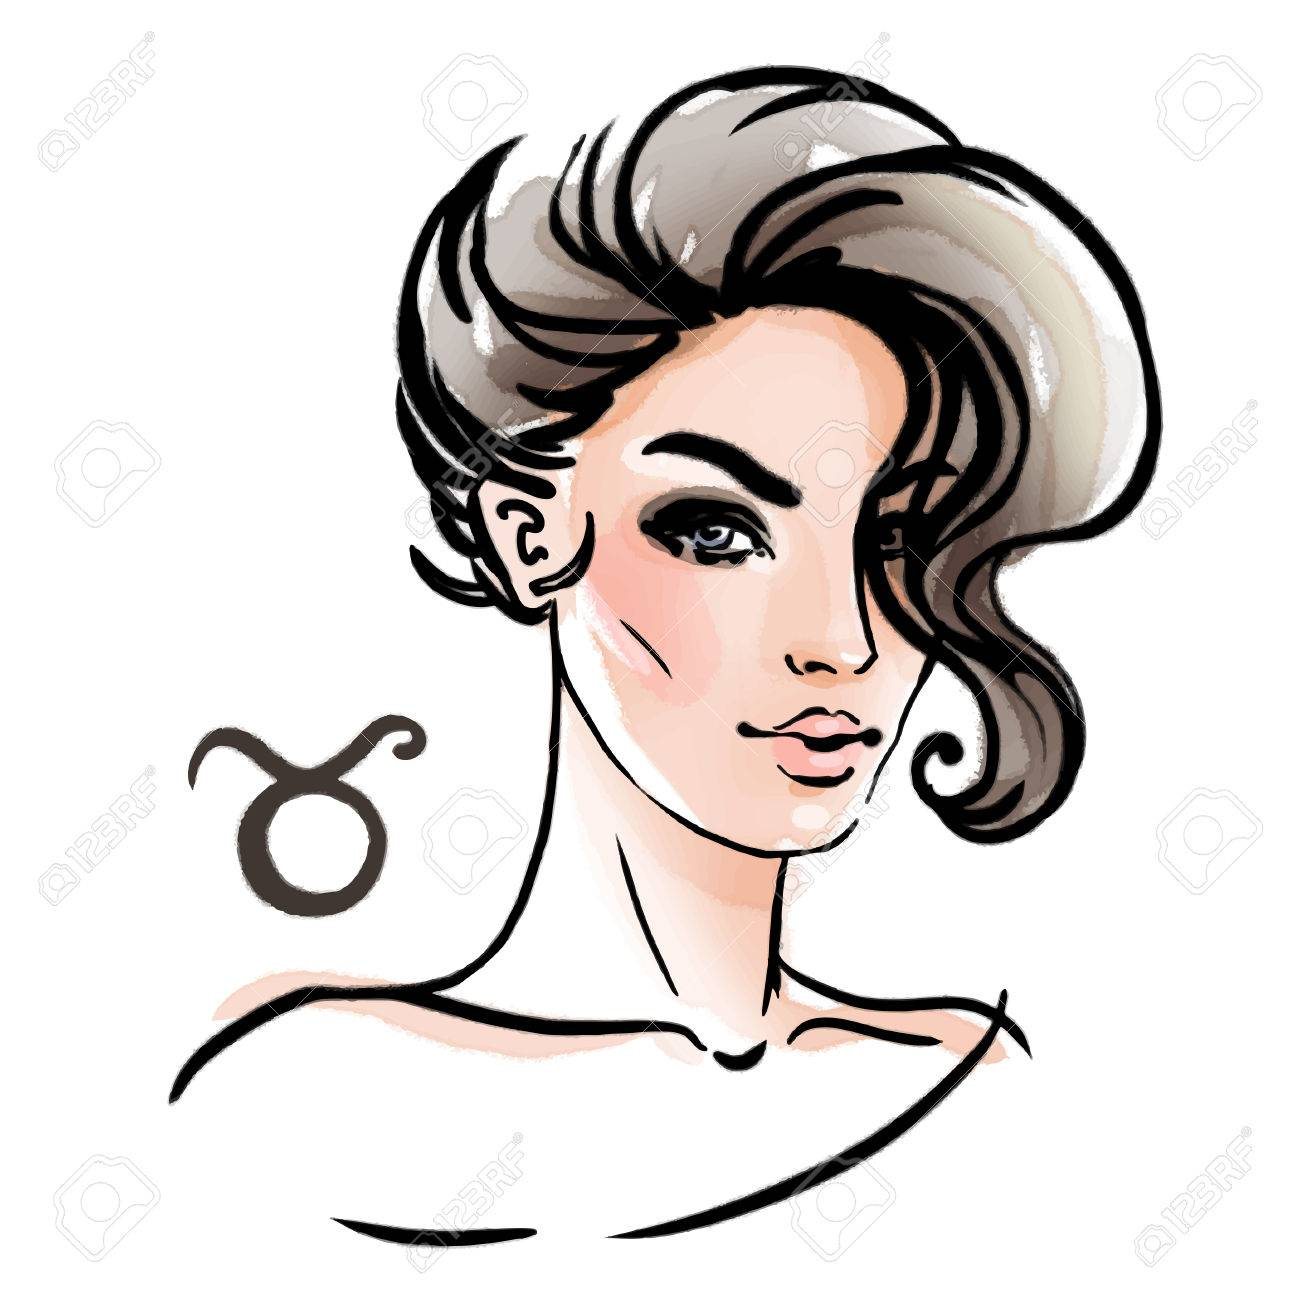 Taurus zodiac sign as a beautiful girl. Ink and watercolor fashion vector illustration - 48246221